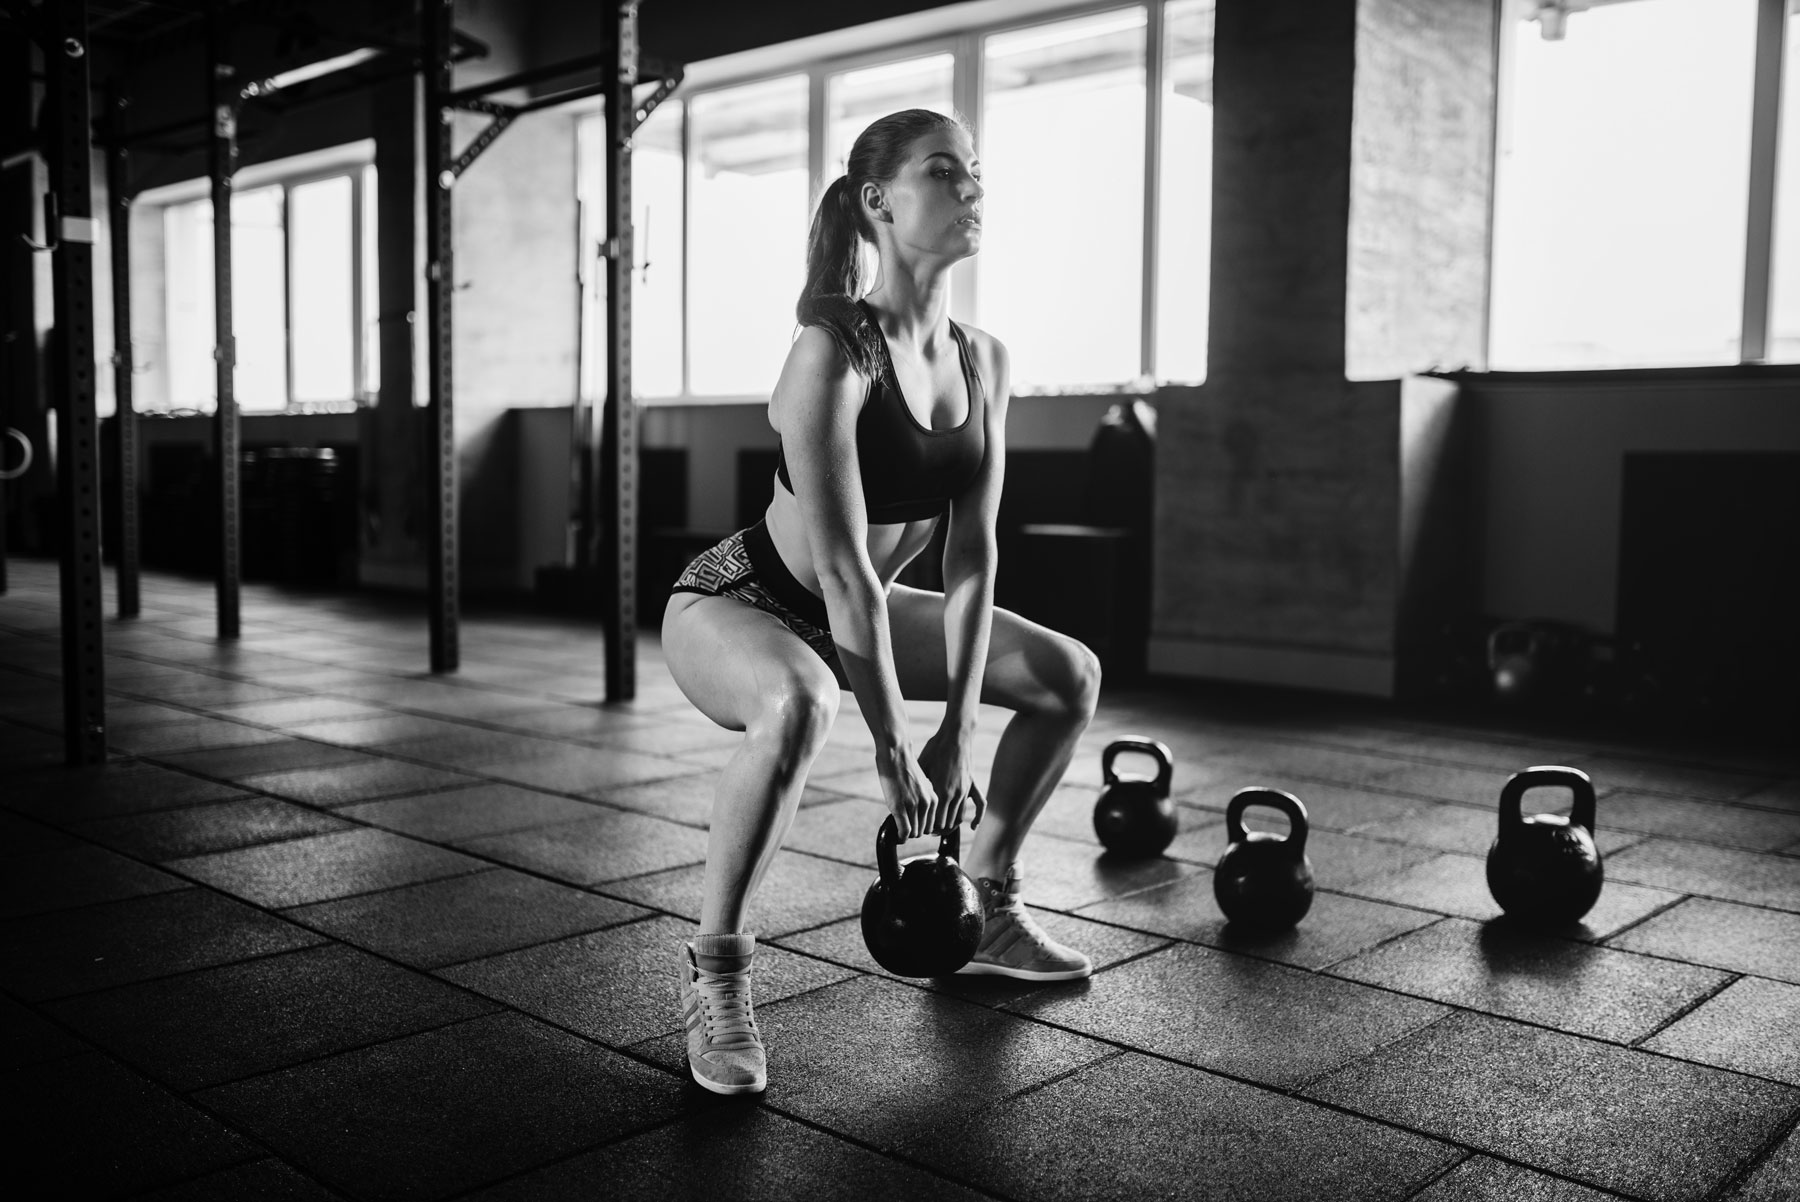 woman-doing-exercise-with-weight-in-fitness-club-PUPN3C8.jpg